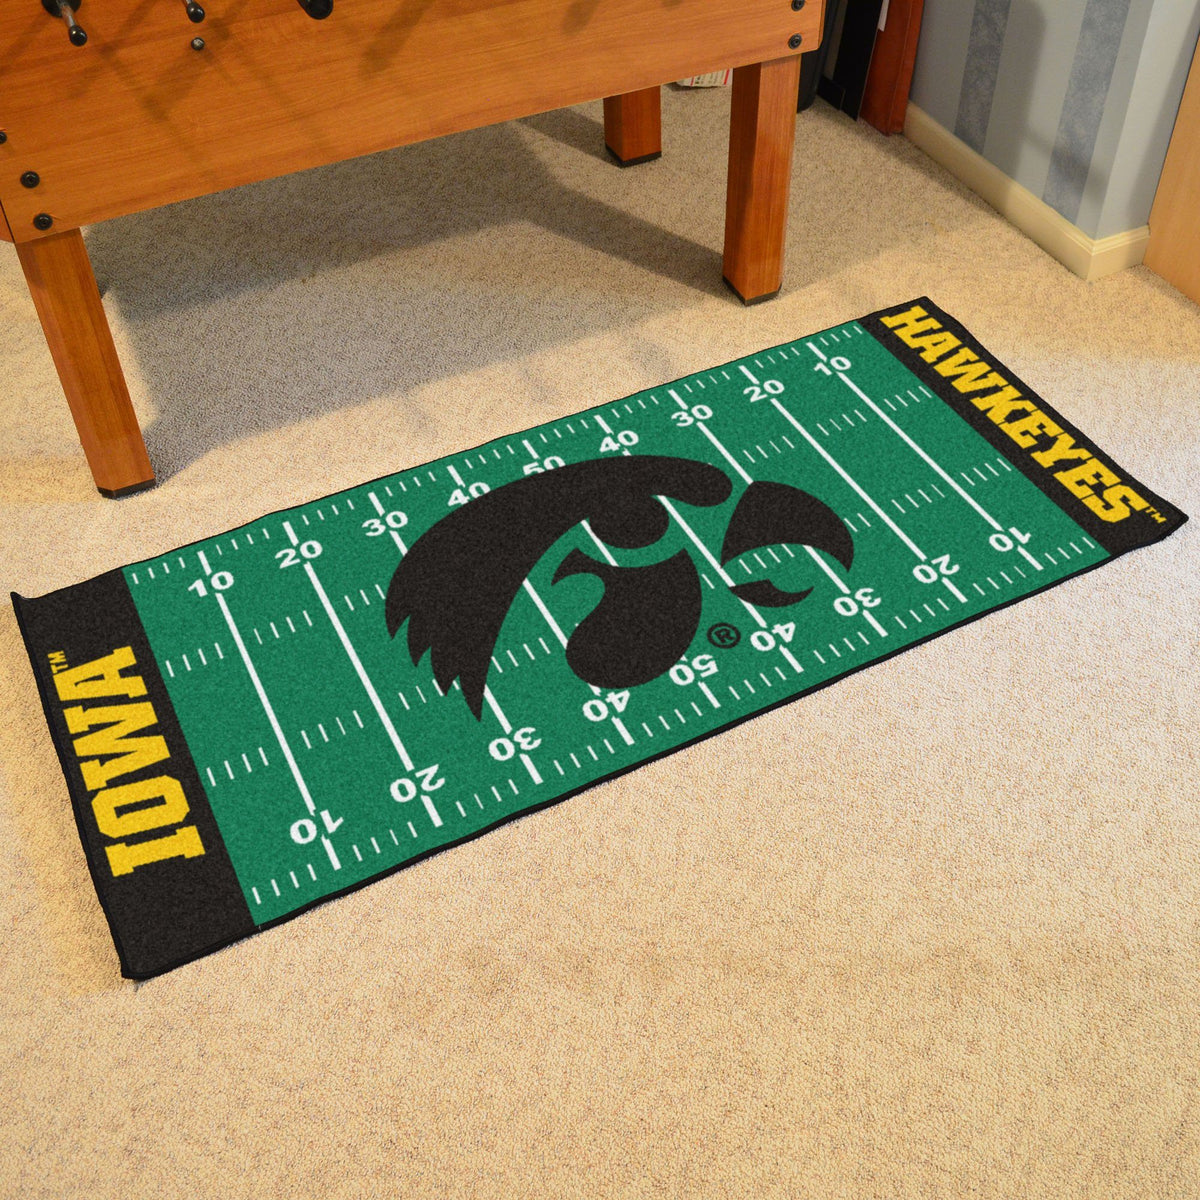 Collegiate - Football Field Runner Collegiate Mats, Rectangular Mats, Football Field Runner, Collegiate, Home Fan Mats Iowa